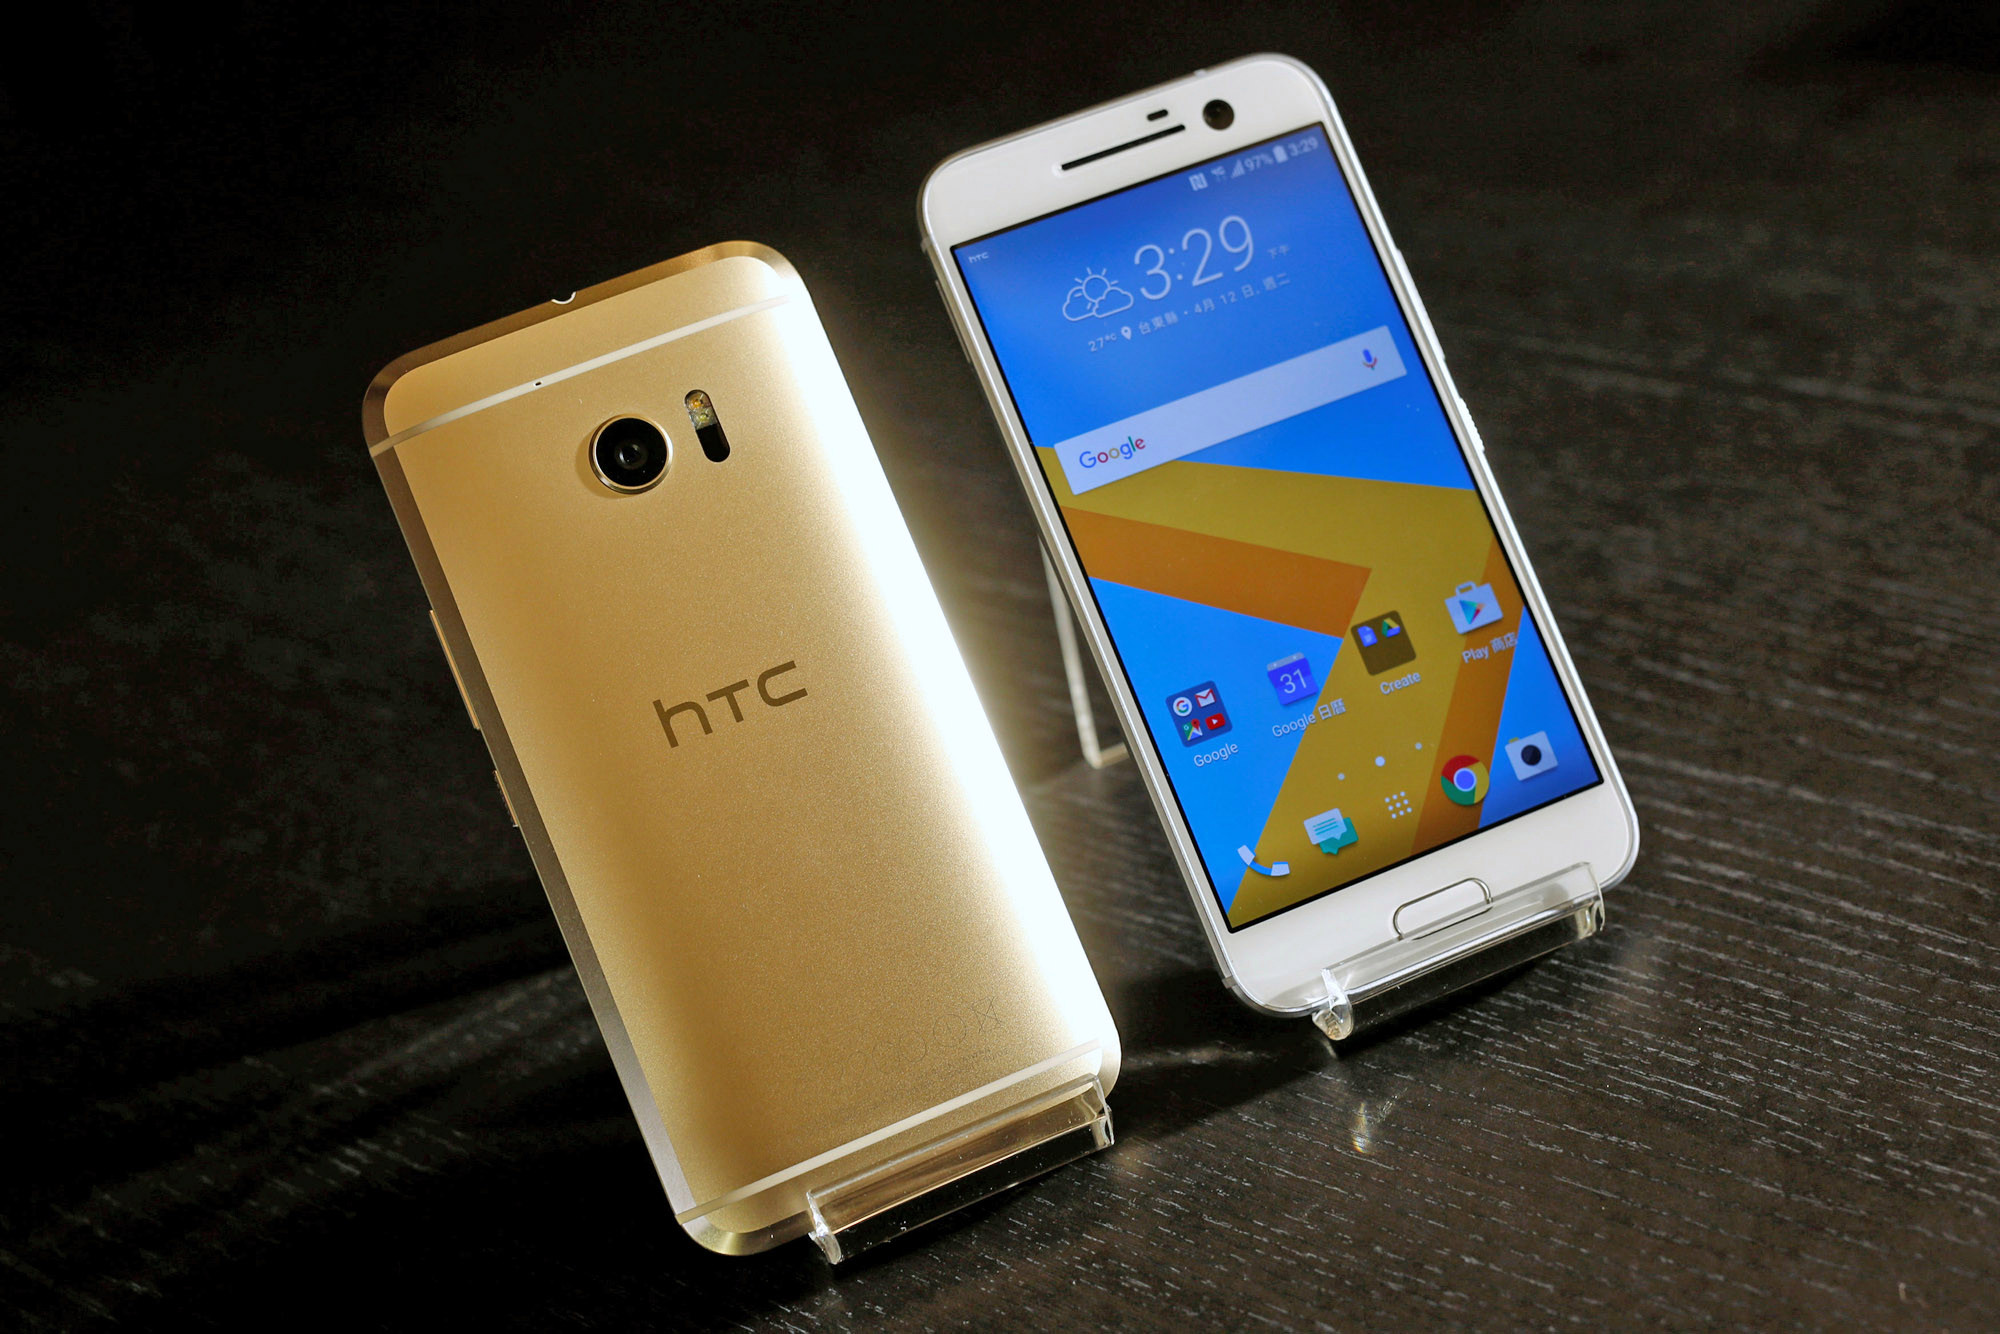 Photo of resurrected manufacturer: HTC 10 smartphone unveiled and surprisingly good